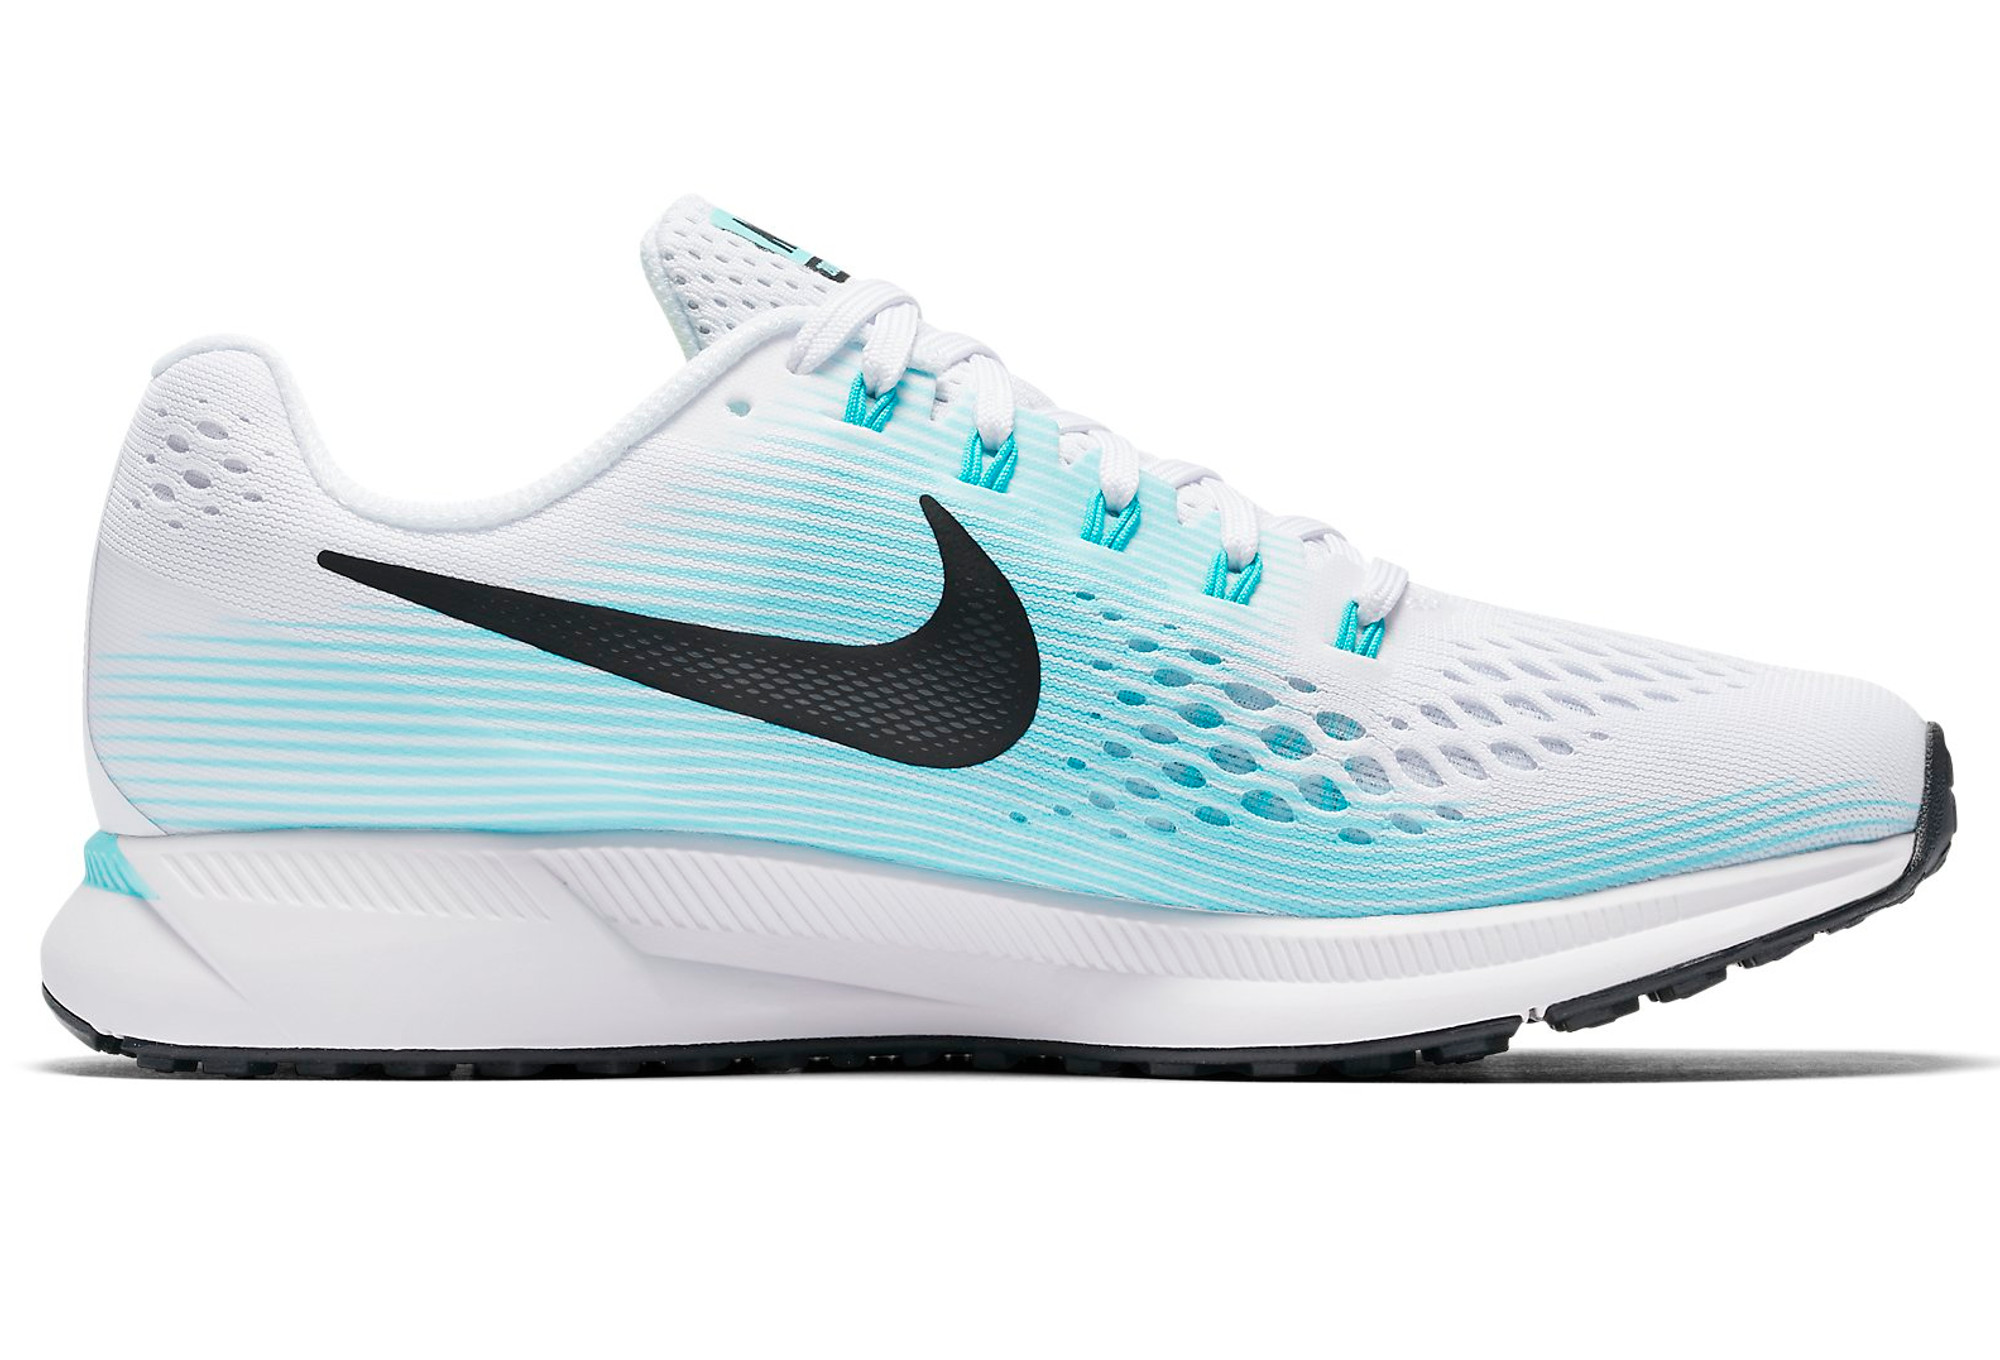 nike air zoom pegasus 34 women white blue. Black Bedroom Furniture Sets. Home Design Ideas